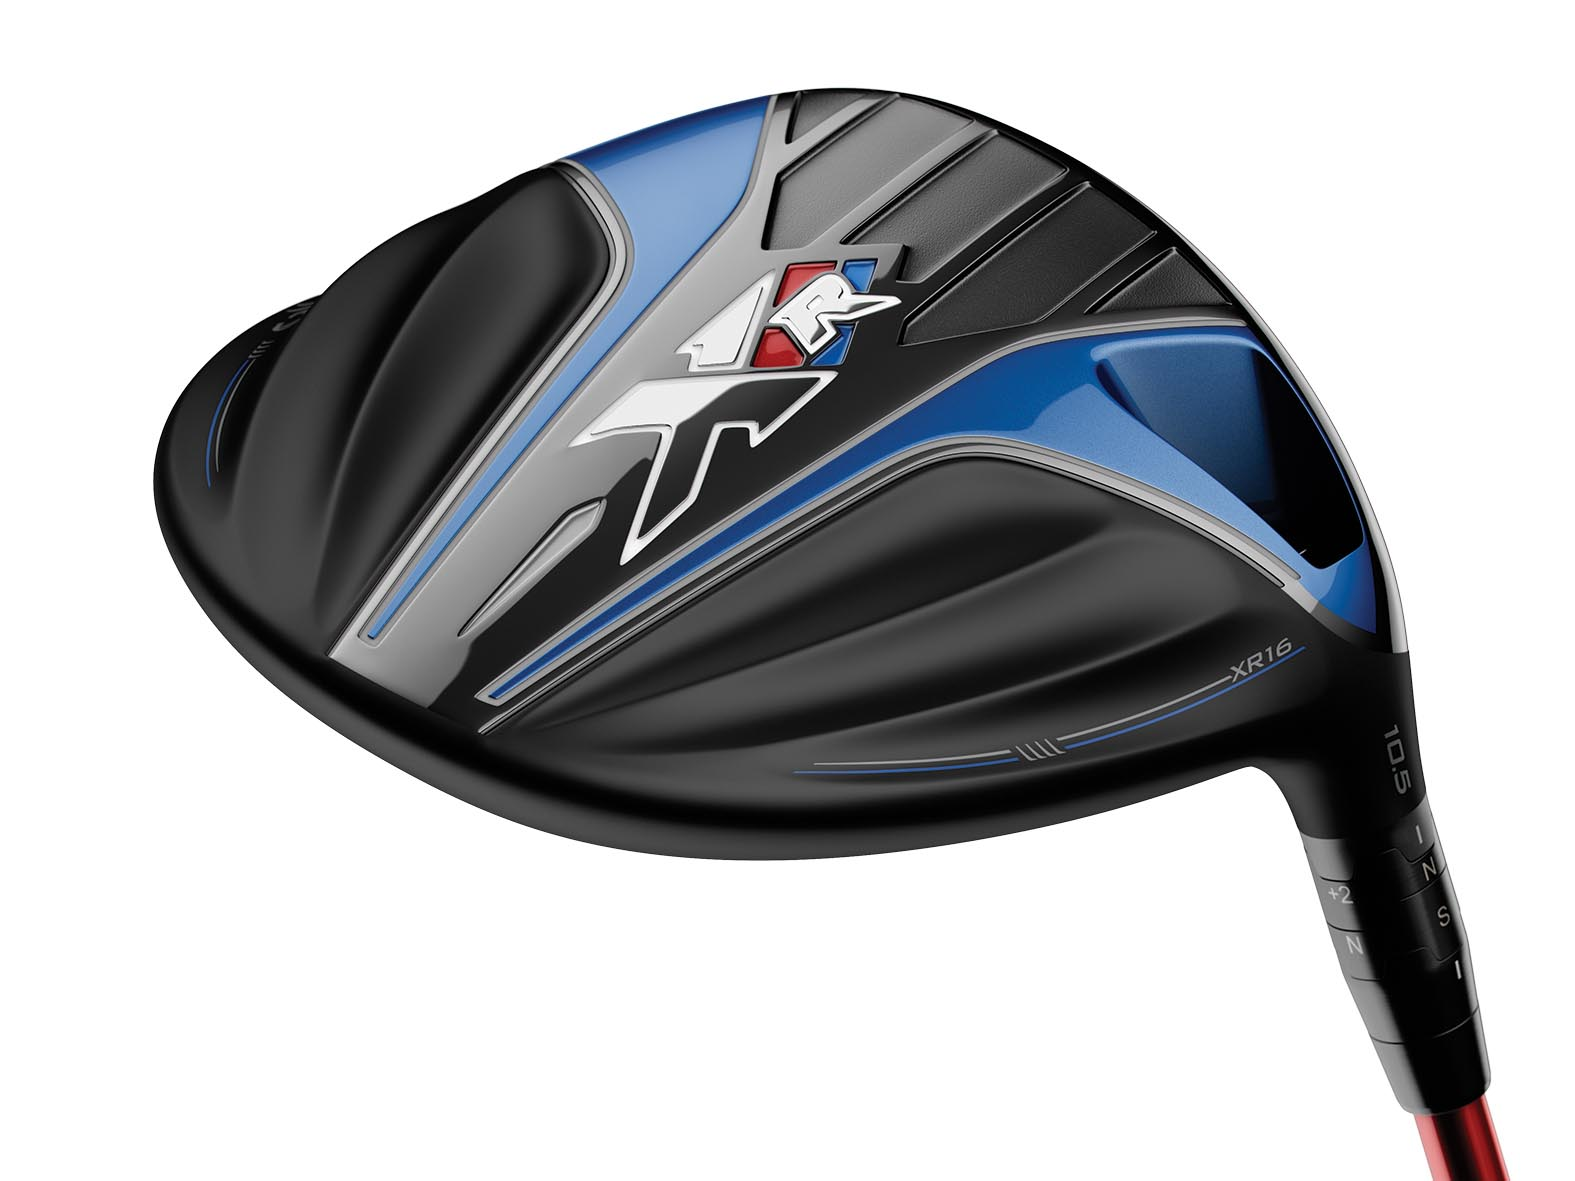 callaway xr 16 driver unveiled. Black Bedroom Furniture Sets. Home Design Ideas